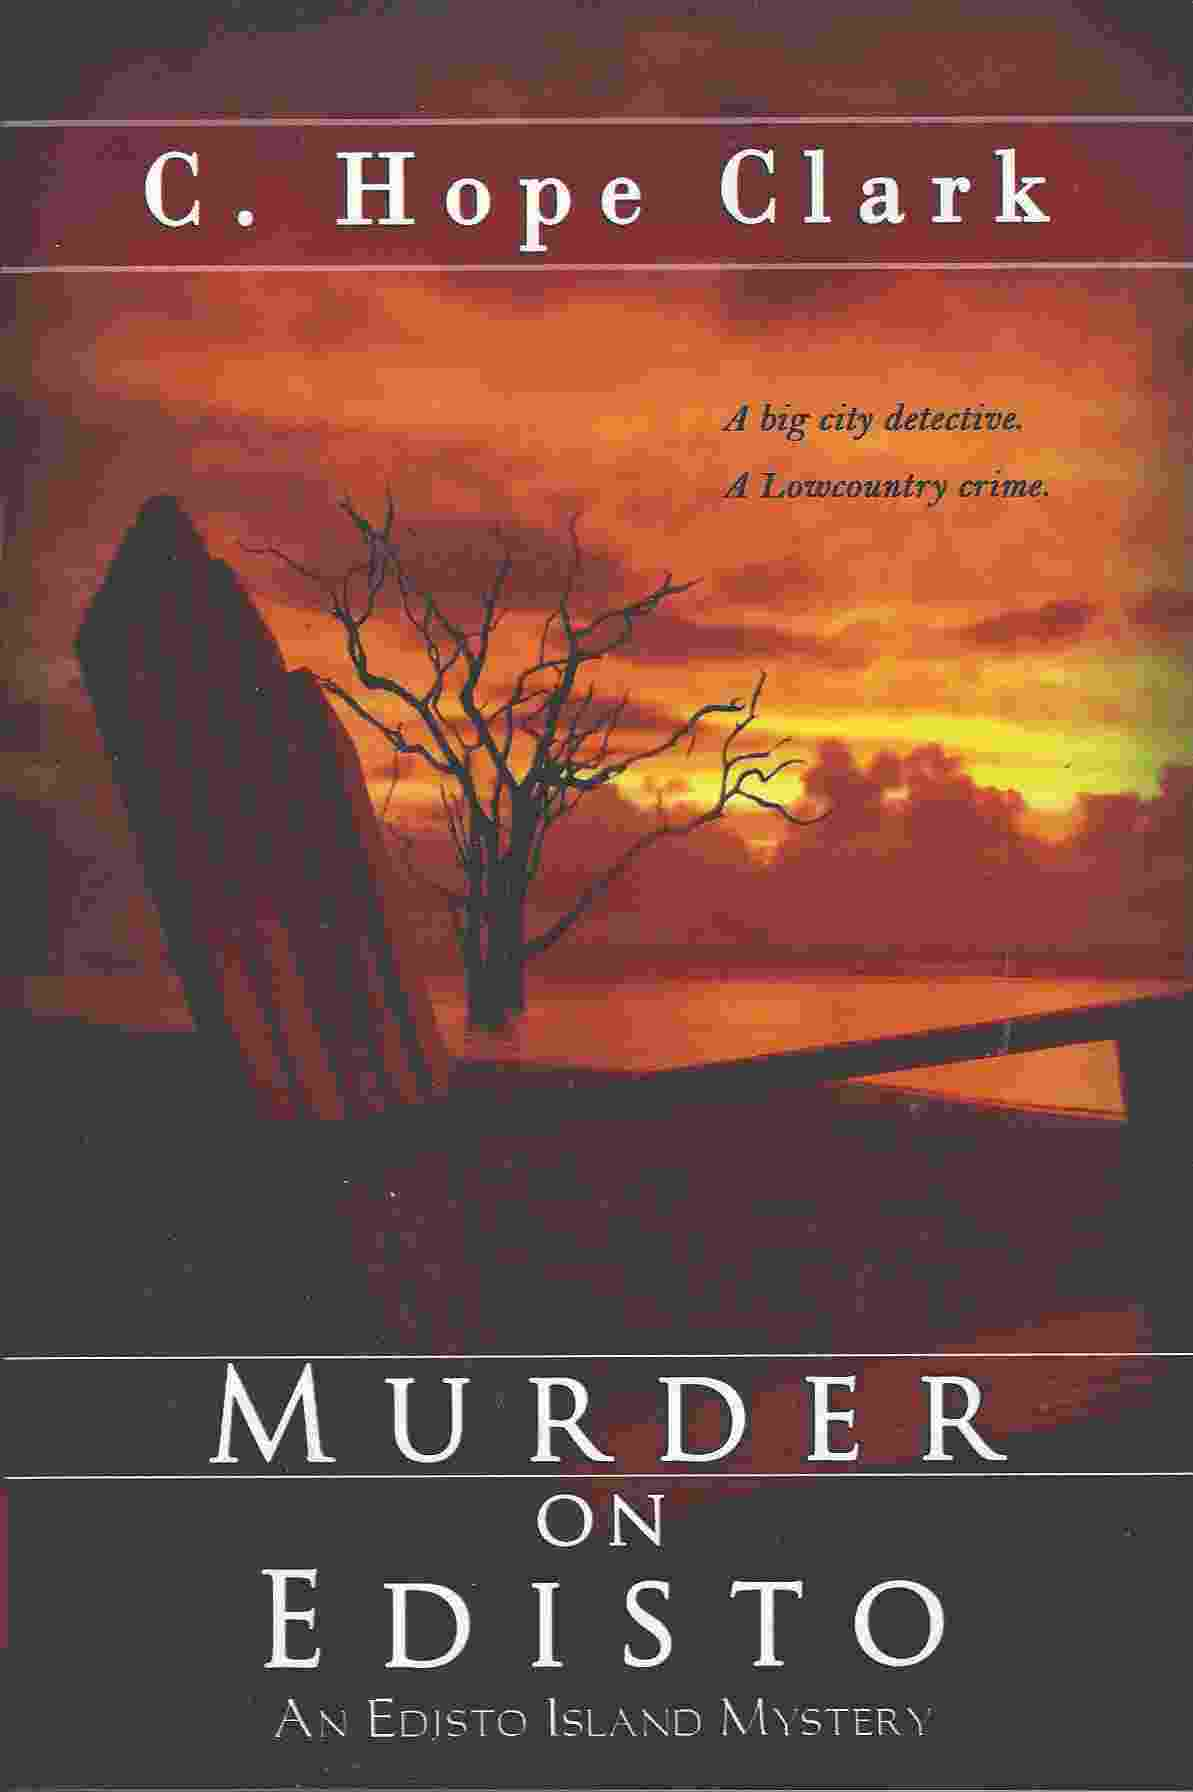 Image for MURDER ON EDISTO